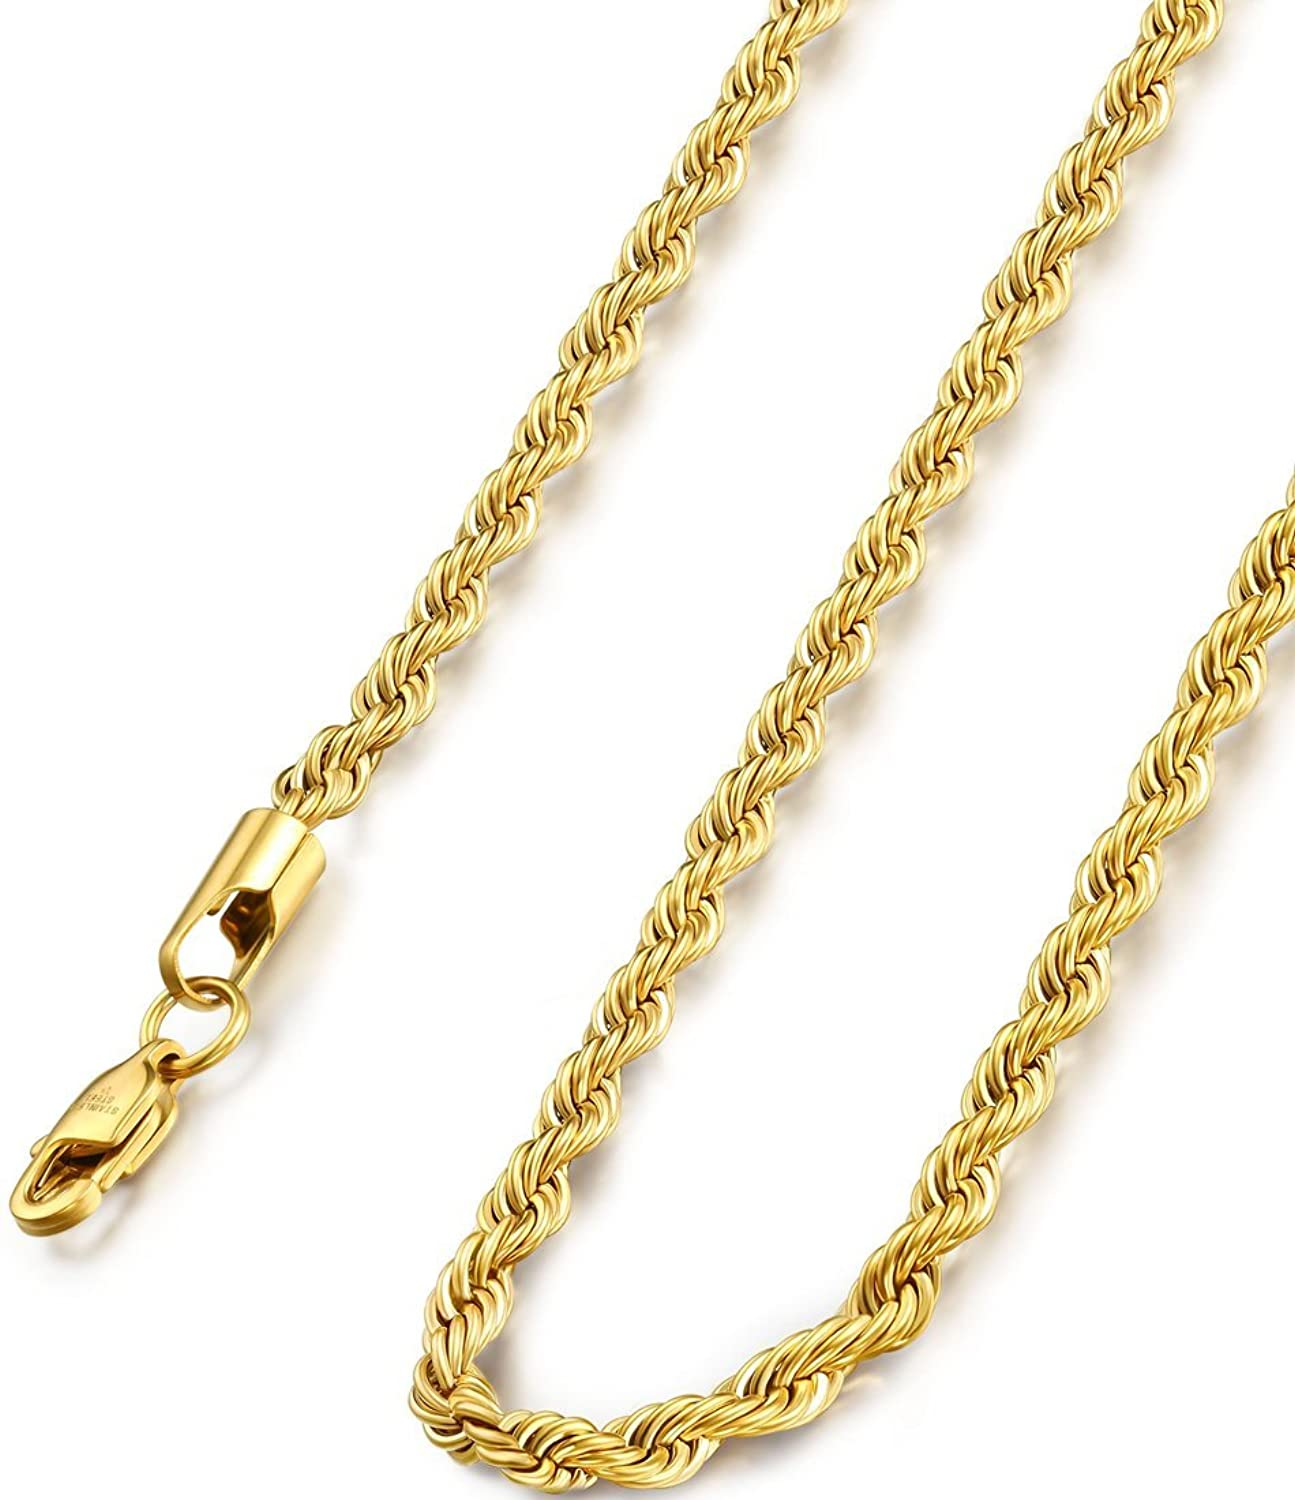 silver twisted rope chain pieces inches necklace chains sterling product